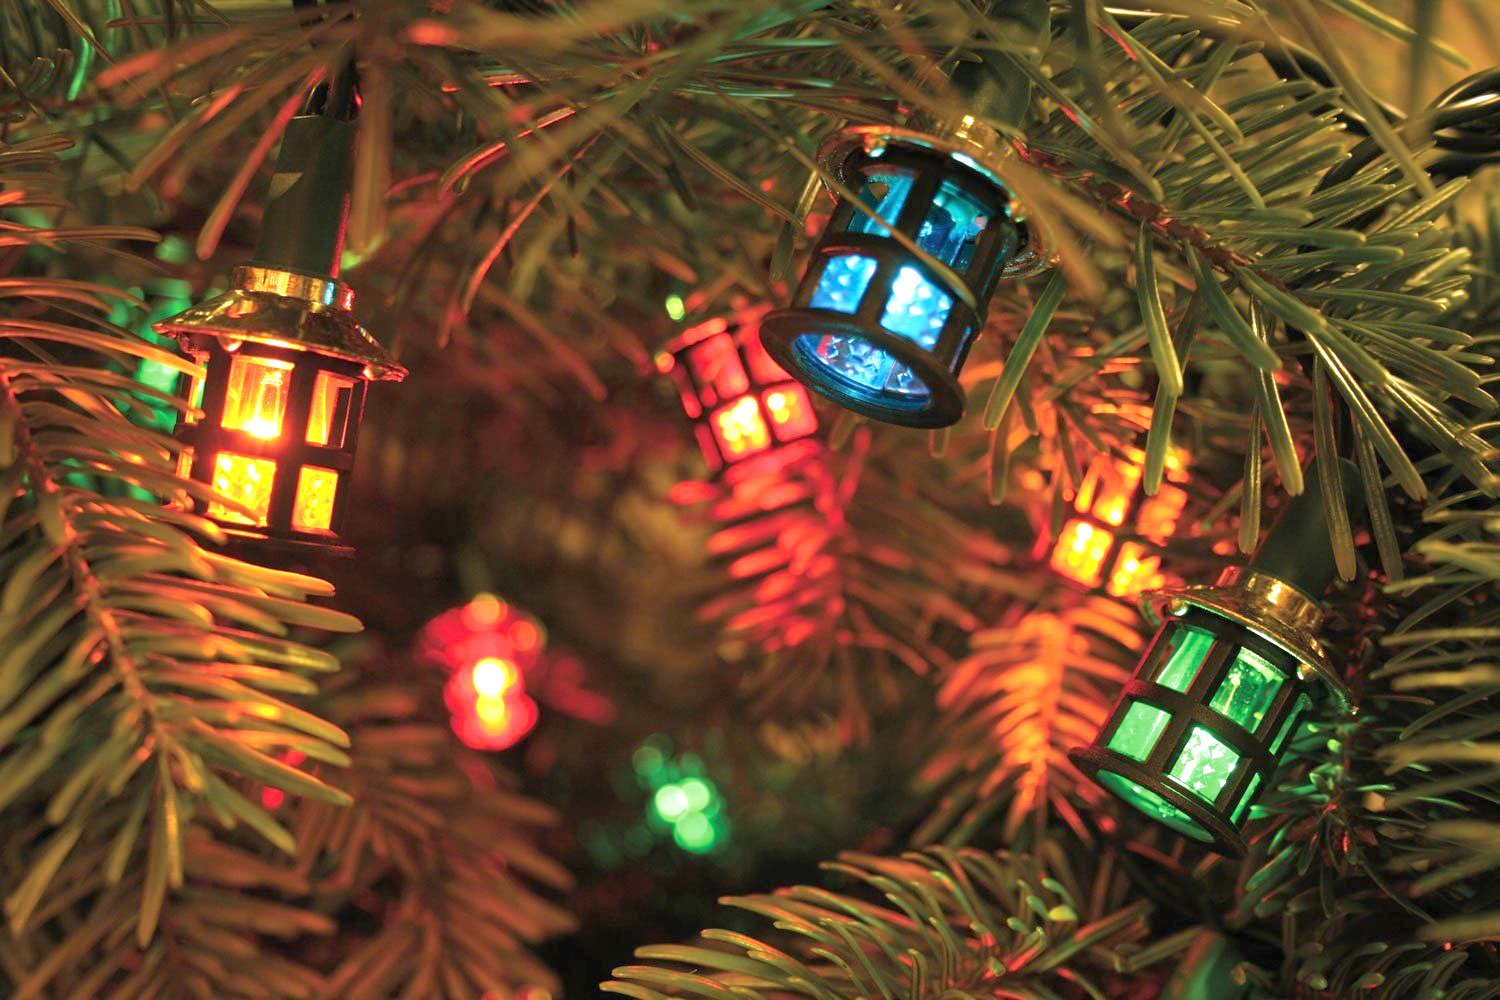 80 LED Coloured Mini Christmas Lantern Lights Decoration Mains Powered Indoor or Outdoor Use Quickdraw